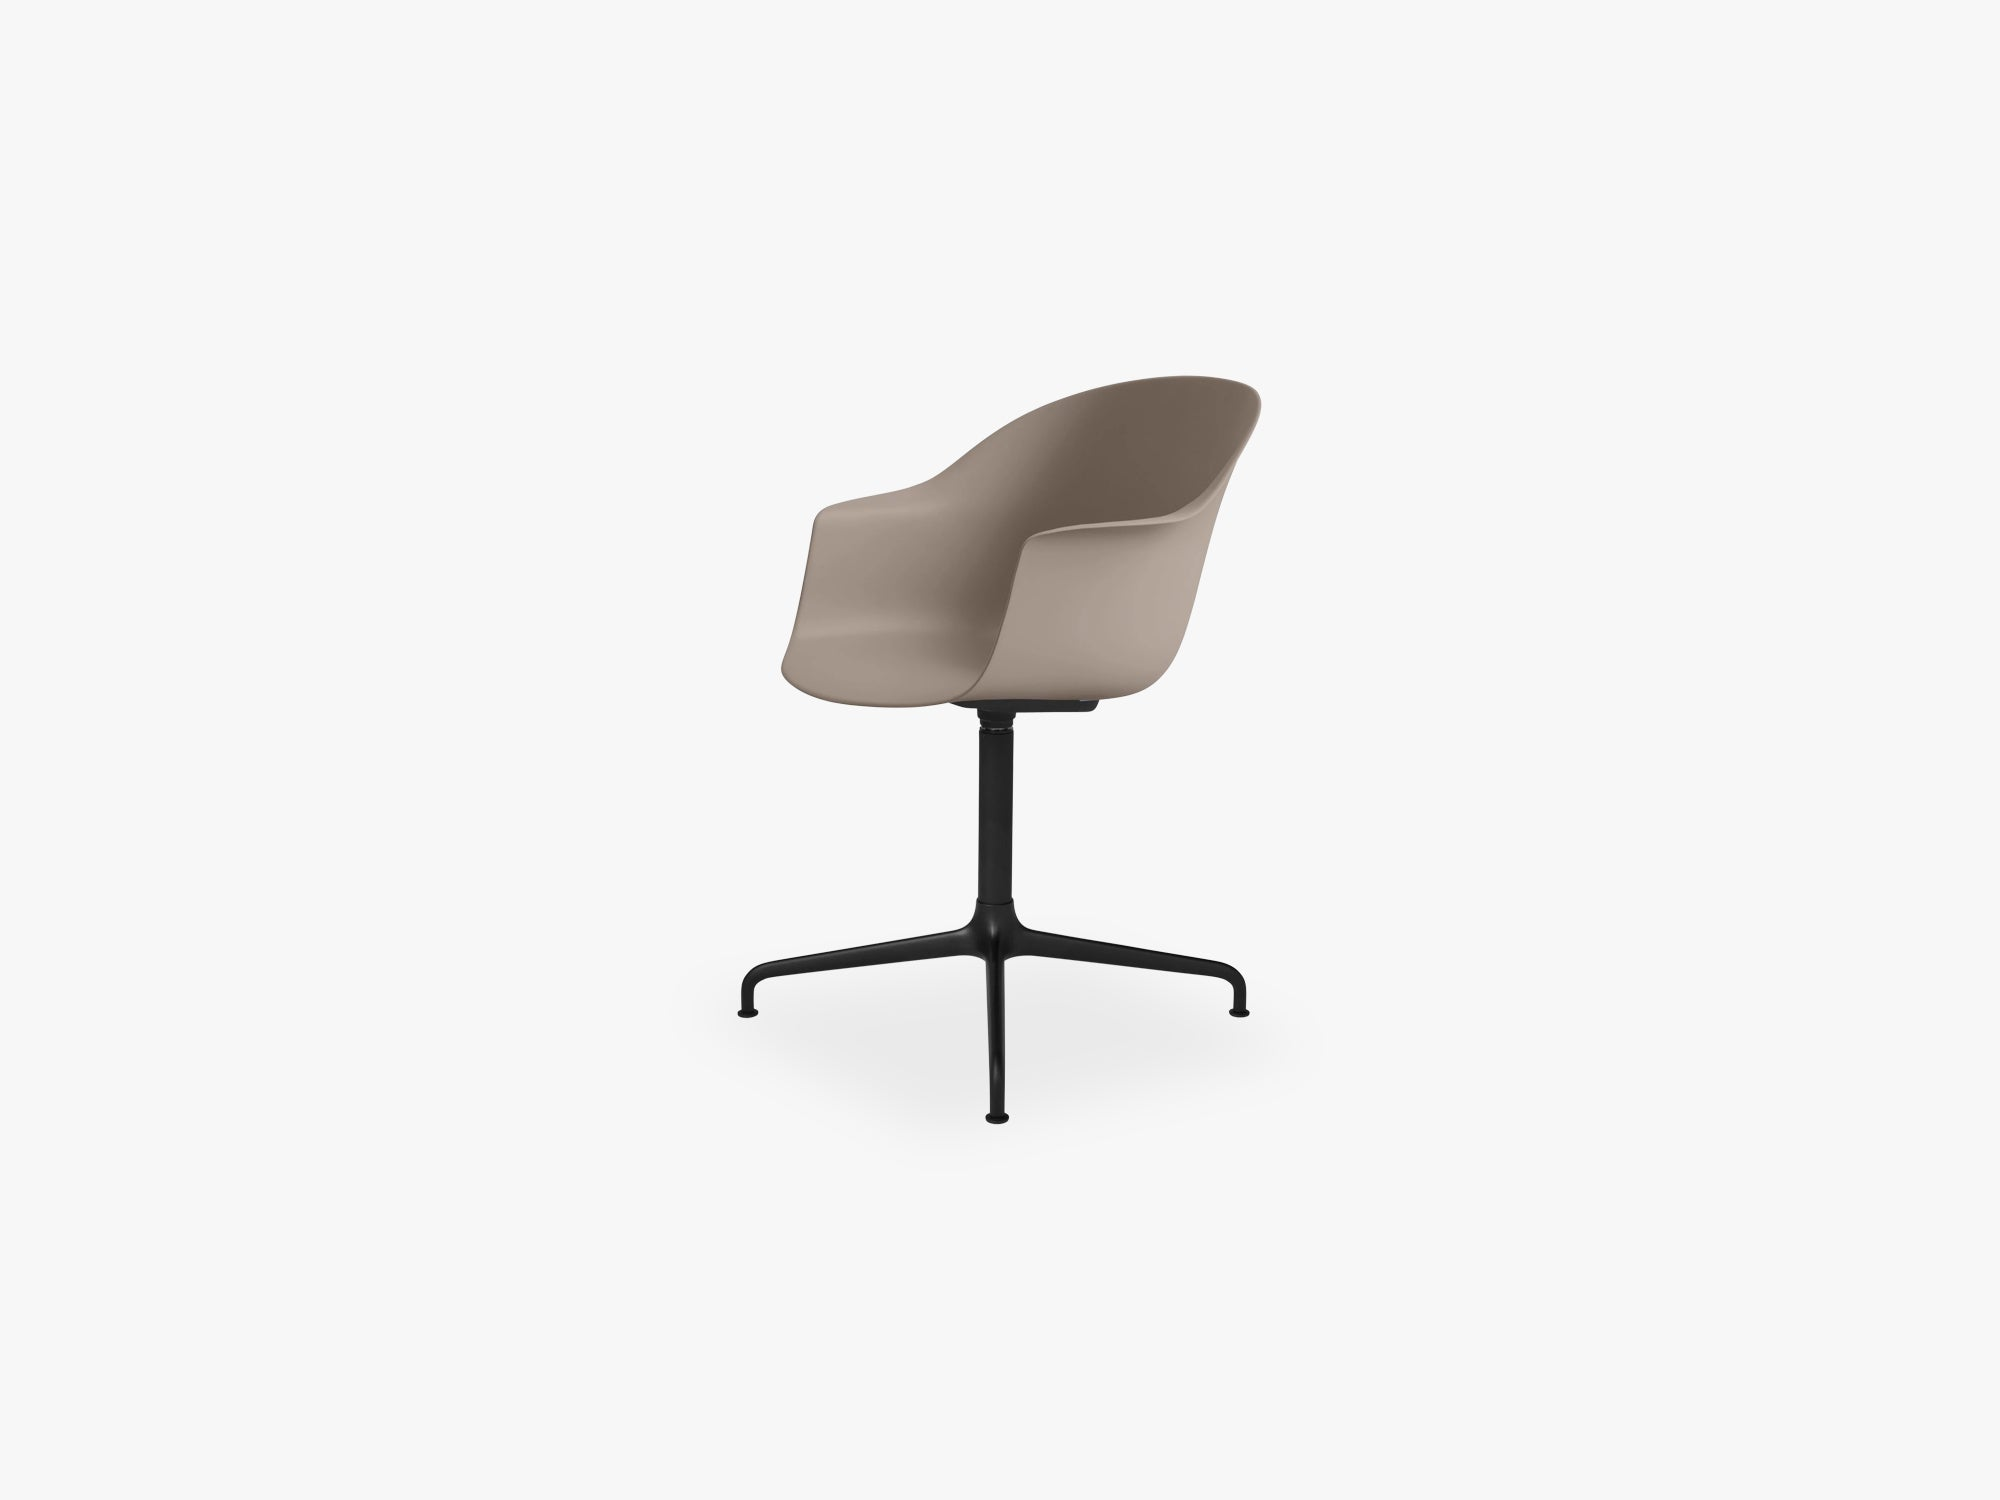 Bat Meeting Chair - Skal m 4-star base - Black Matt, New Beige fra GUBI